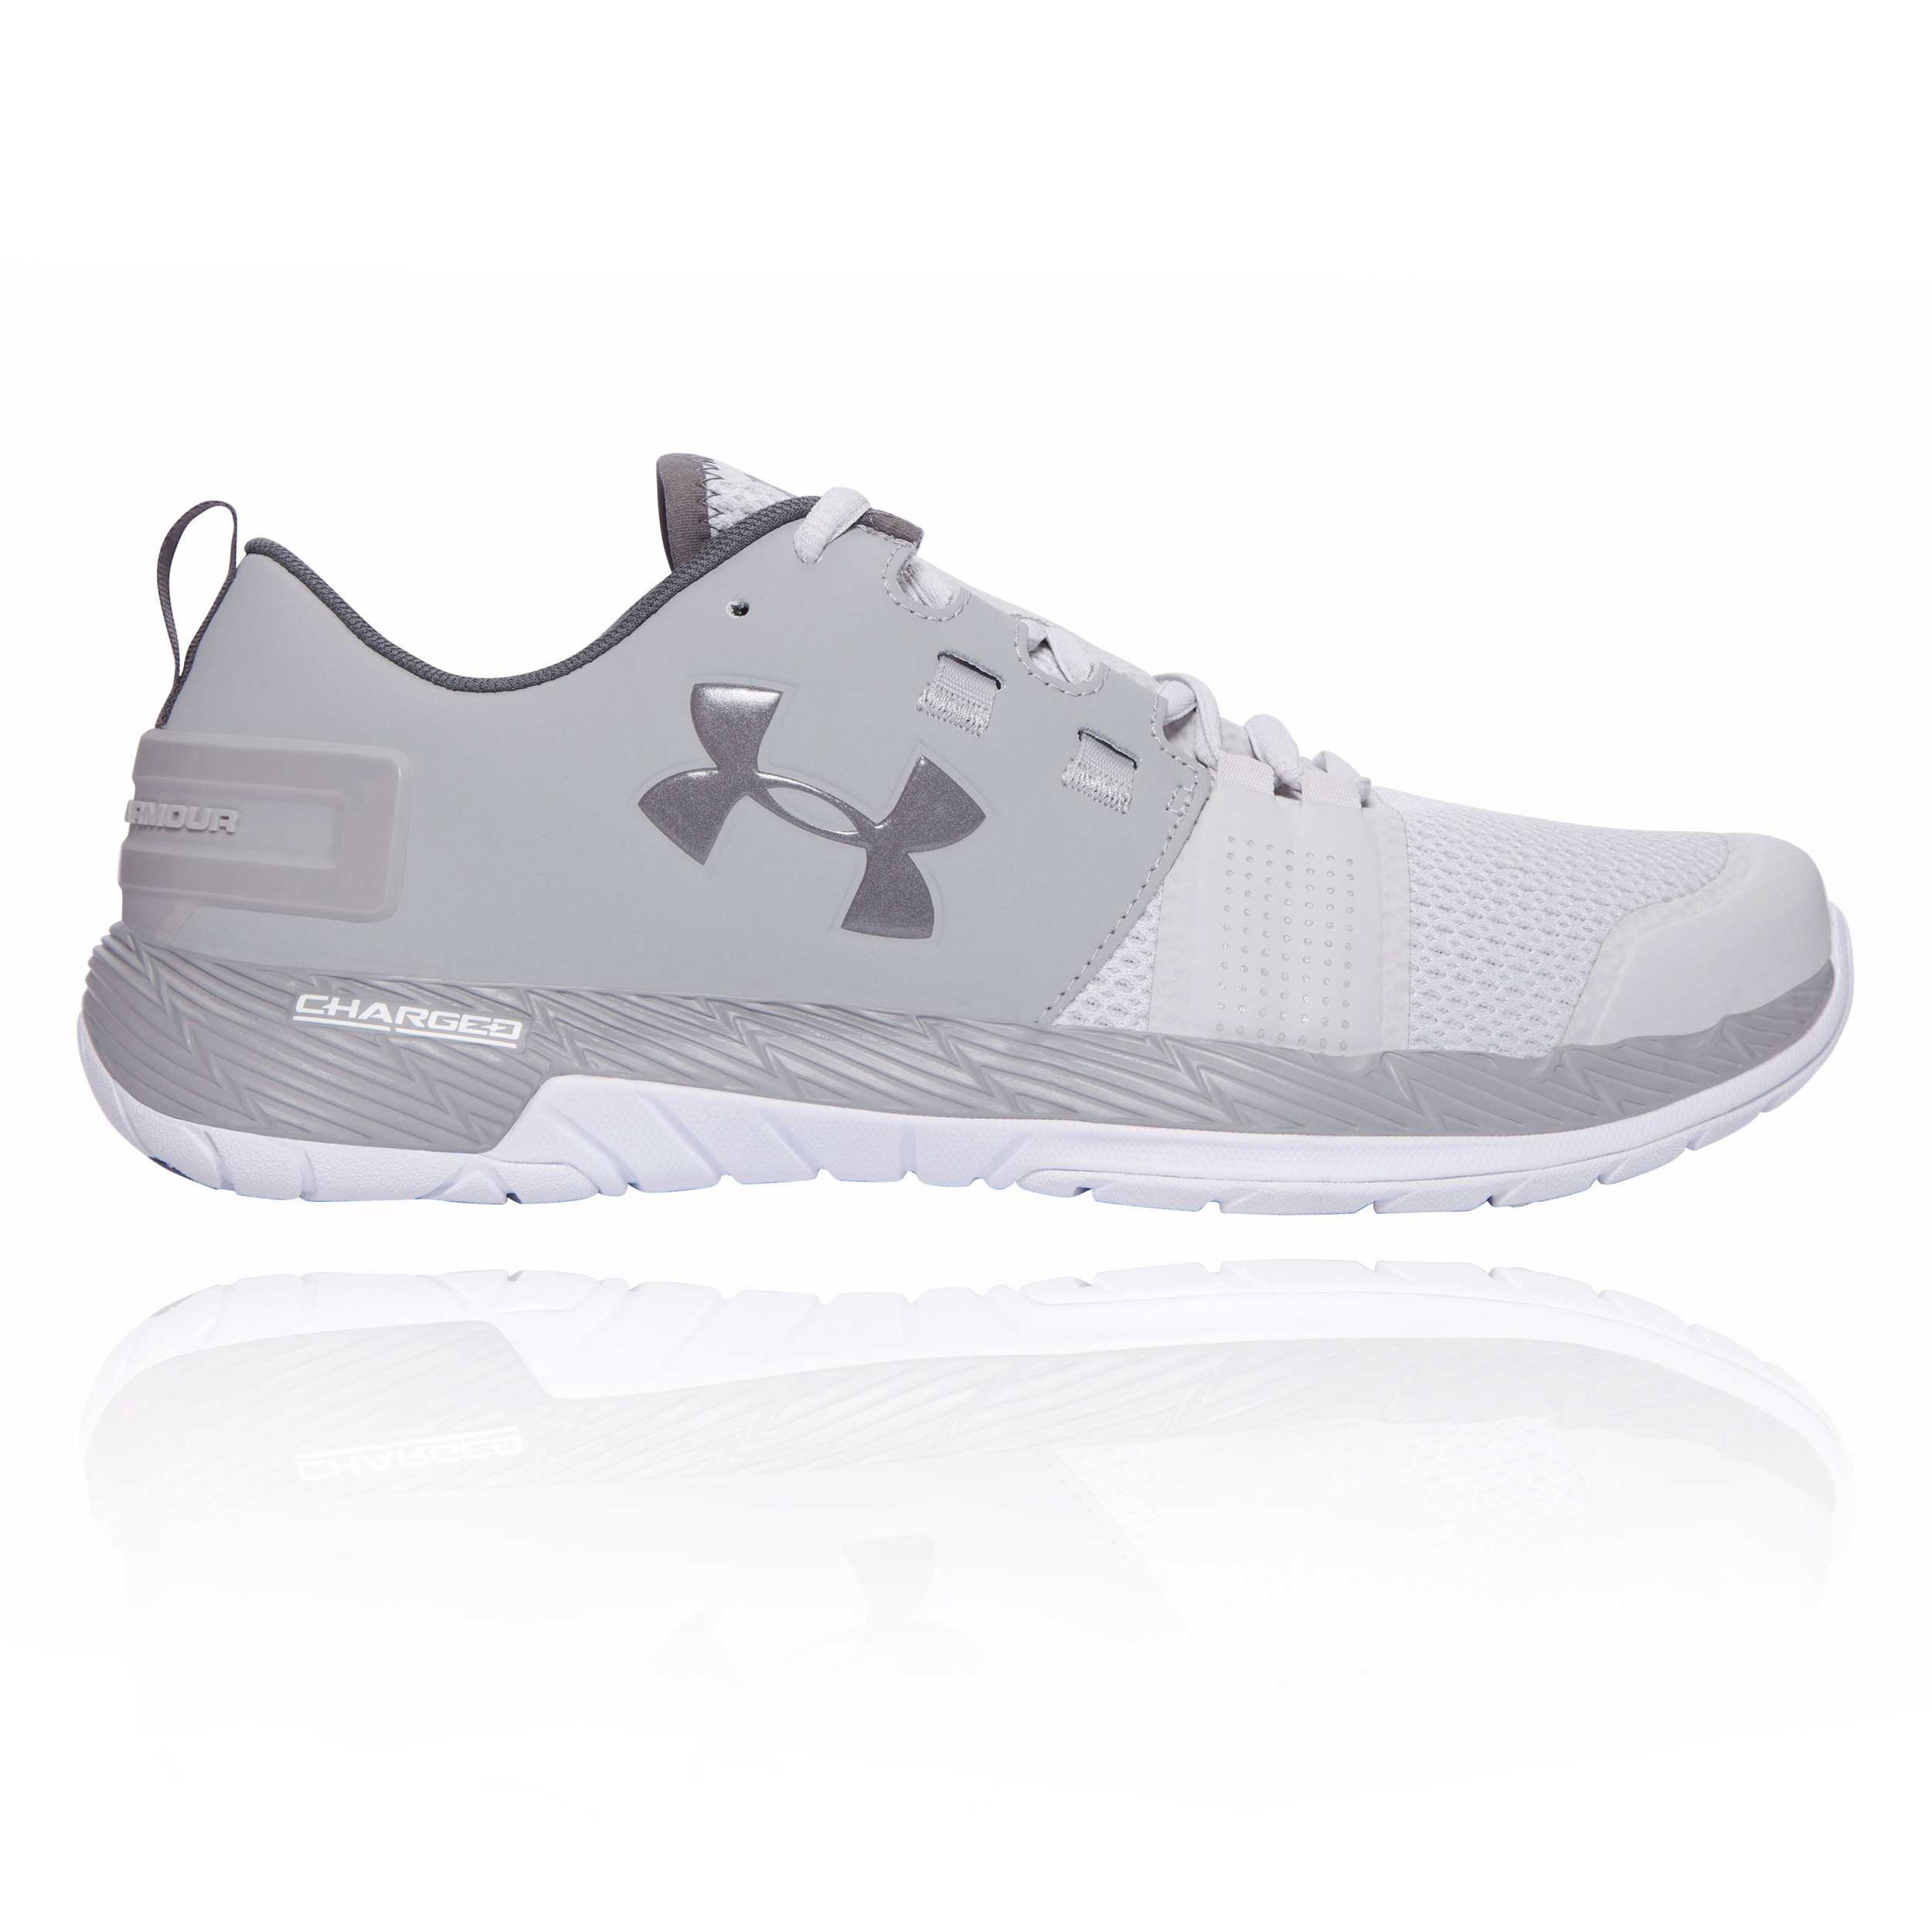 pretty nice 0796a 5c530 Details about Under Armour Mens Commit Training Gym Fitness Shoes Grey  Sports Breathable